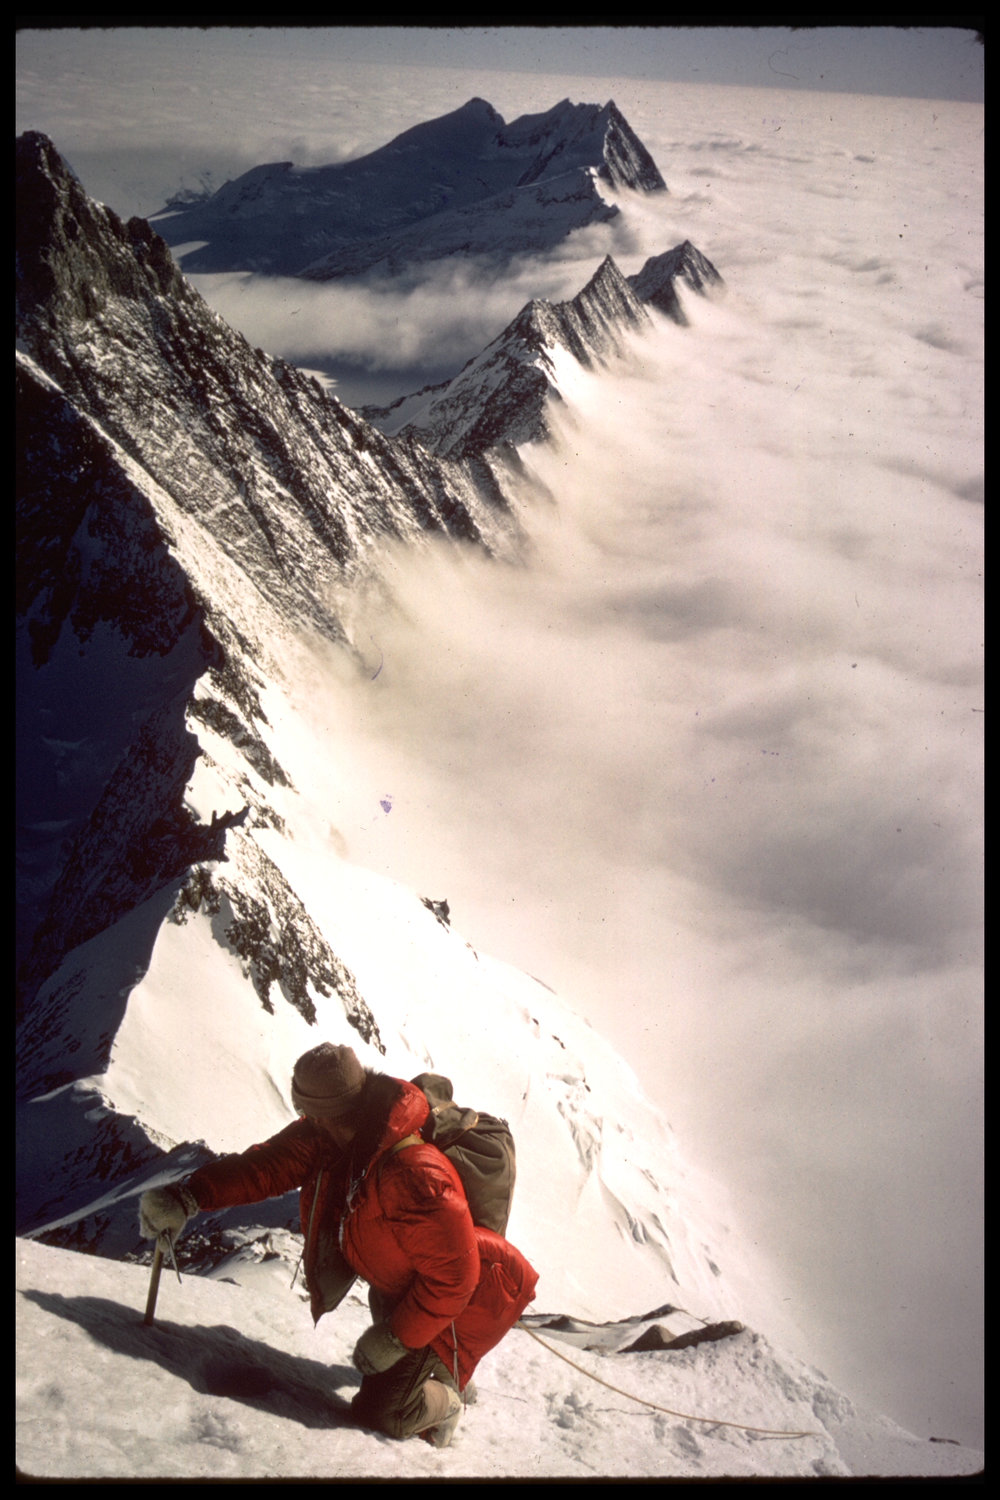 Ice axe being used for climbing